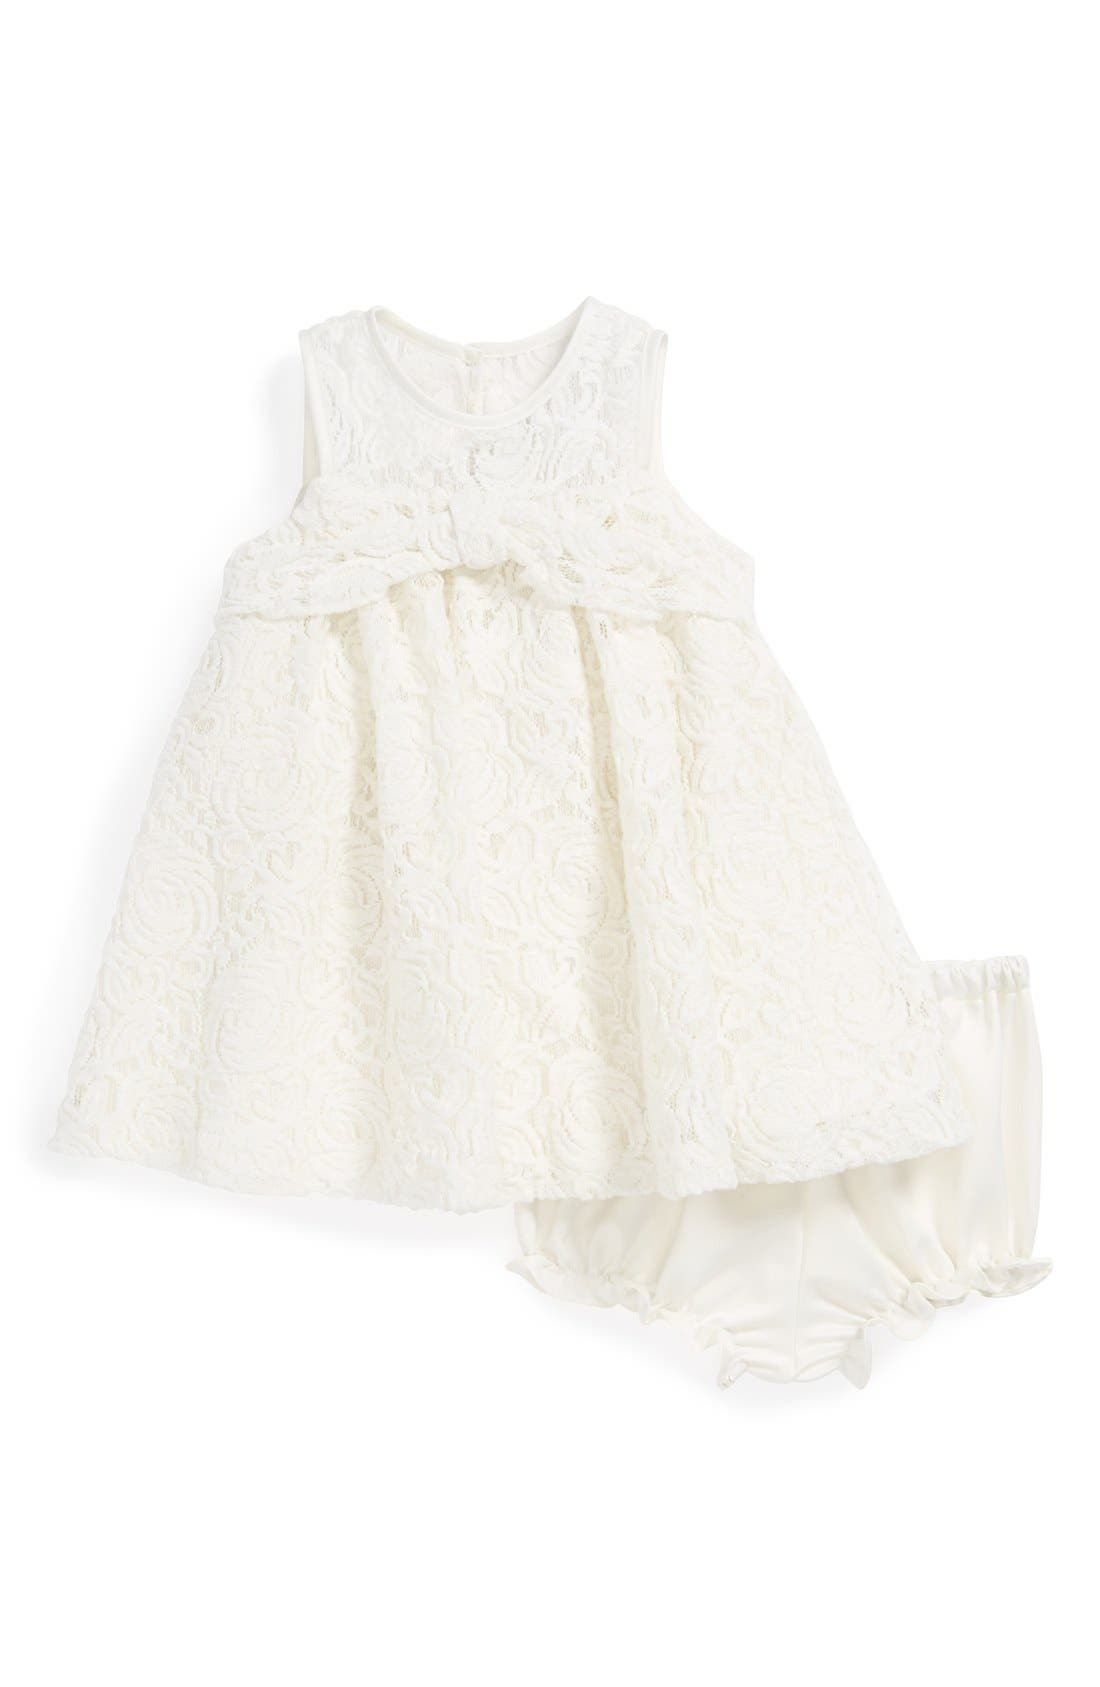 Alternate Image 1 Selected - Pippa & Julie White Lace Dress & Bloomers (Baby Girls)